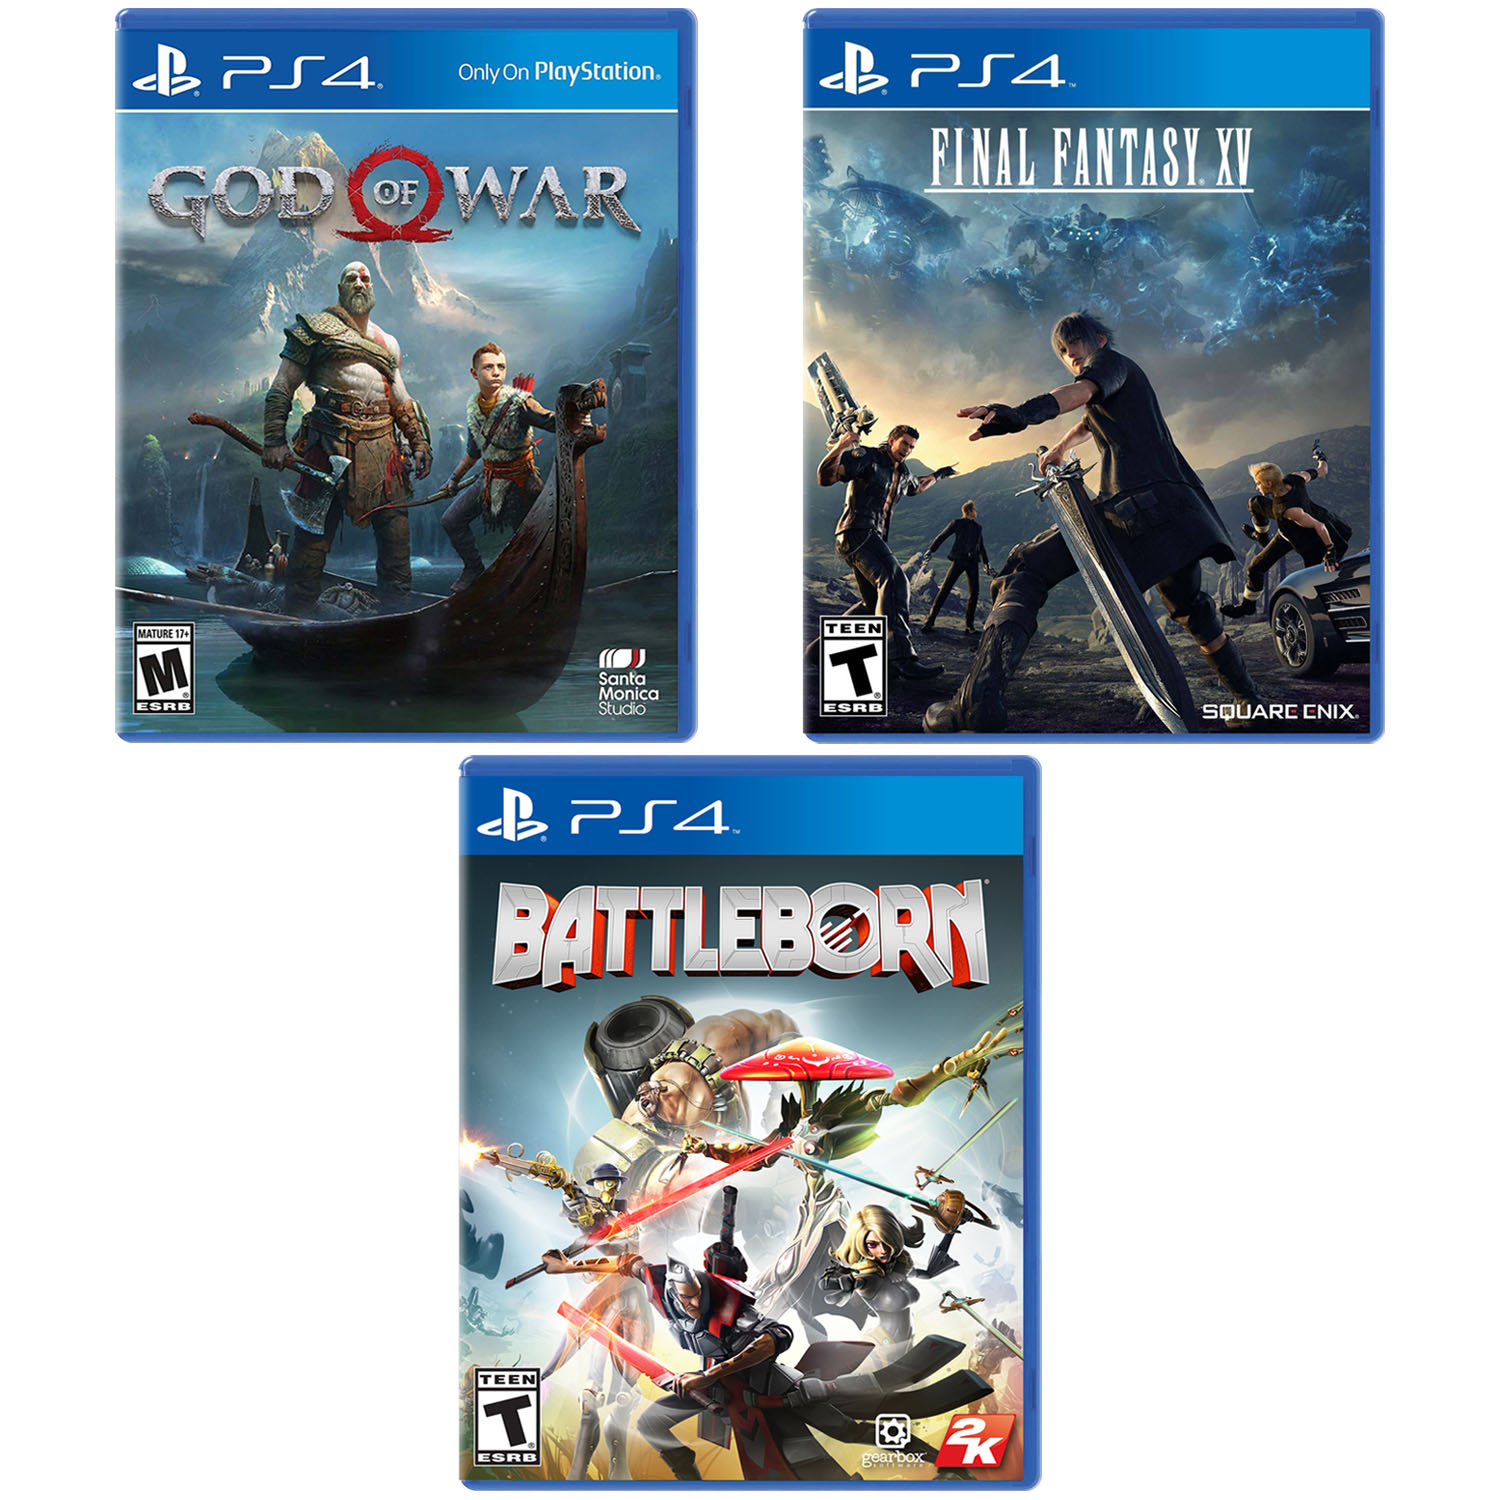 PS4 BUNDLE: God of War / Final Fantasy XV / Battleborn, PlayStation 4, Preowned/Refurbished